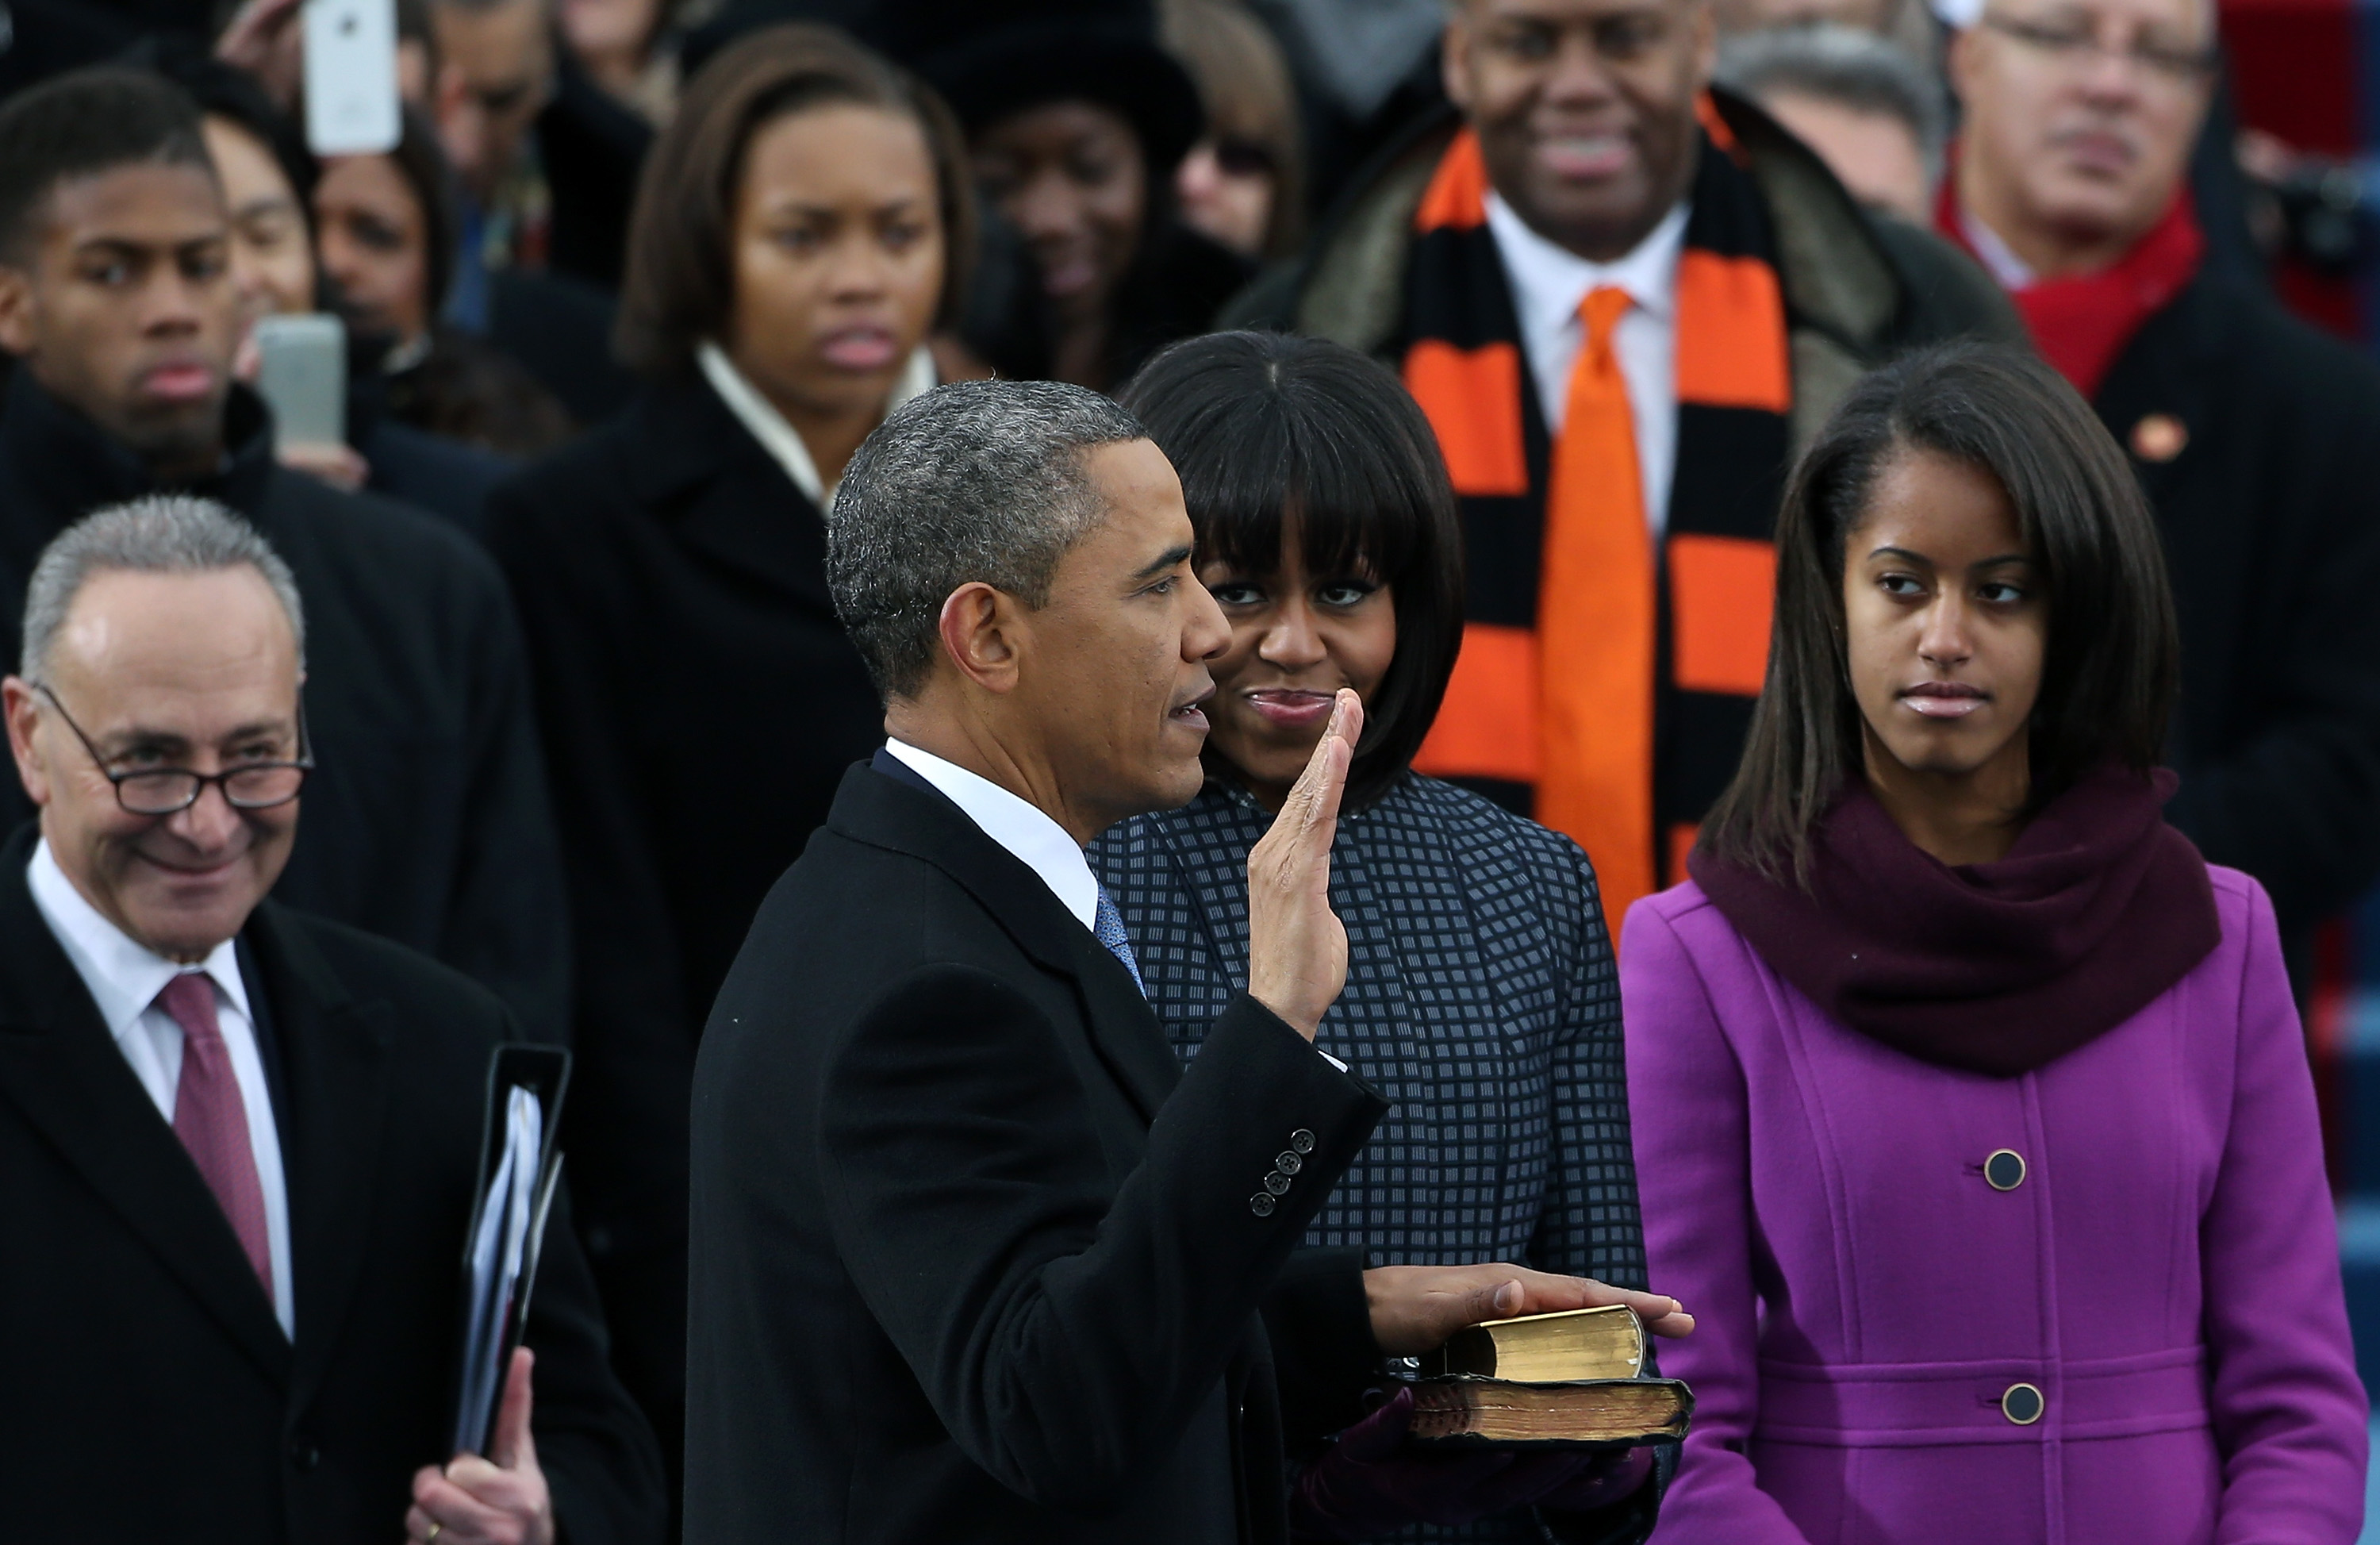 Barack Obama sworn In as U.S. President for a second term (Justin Sullivan/Getty)